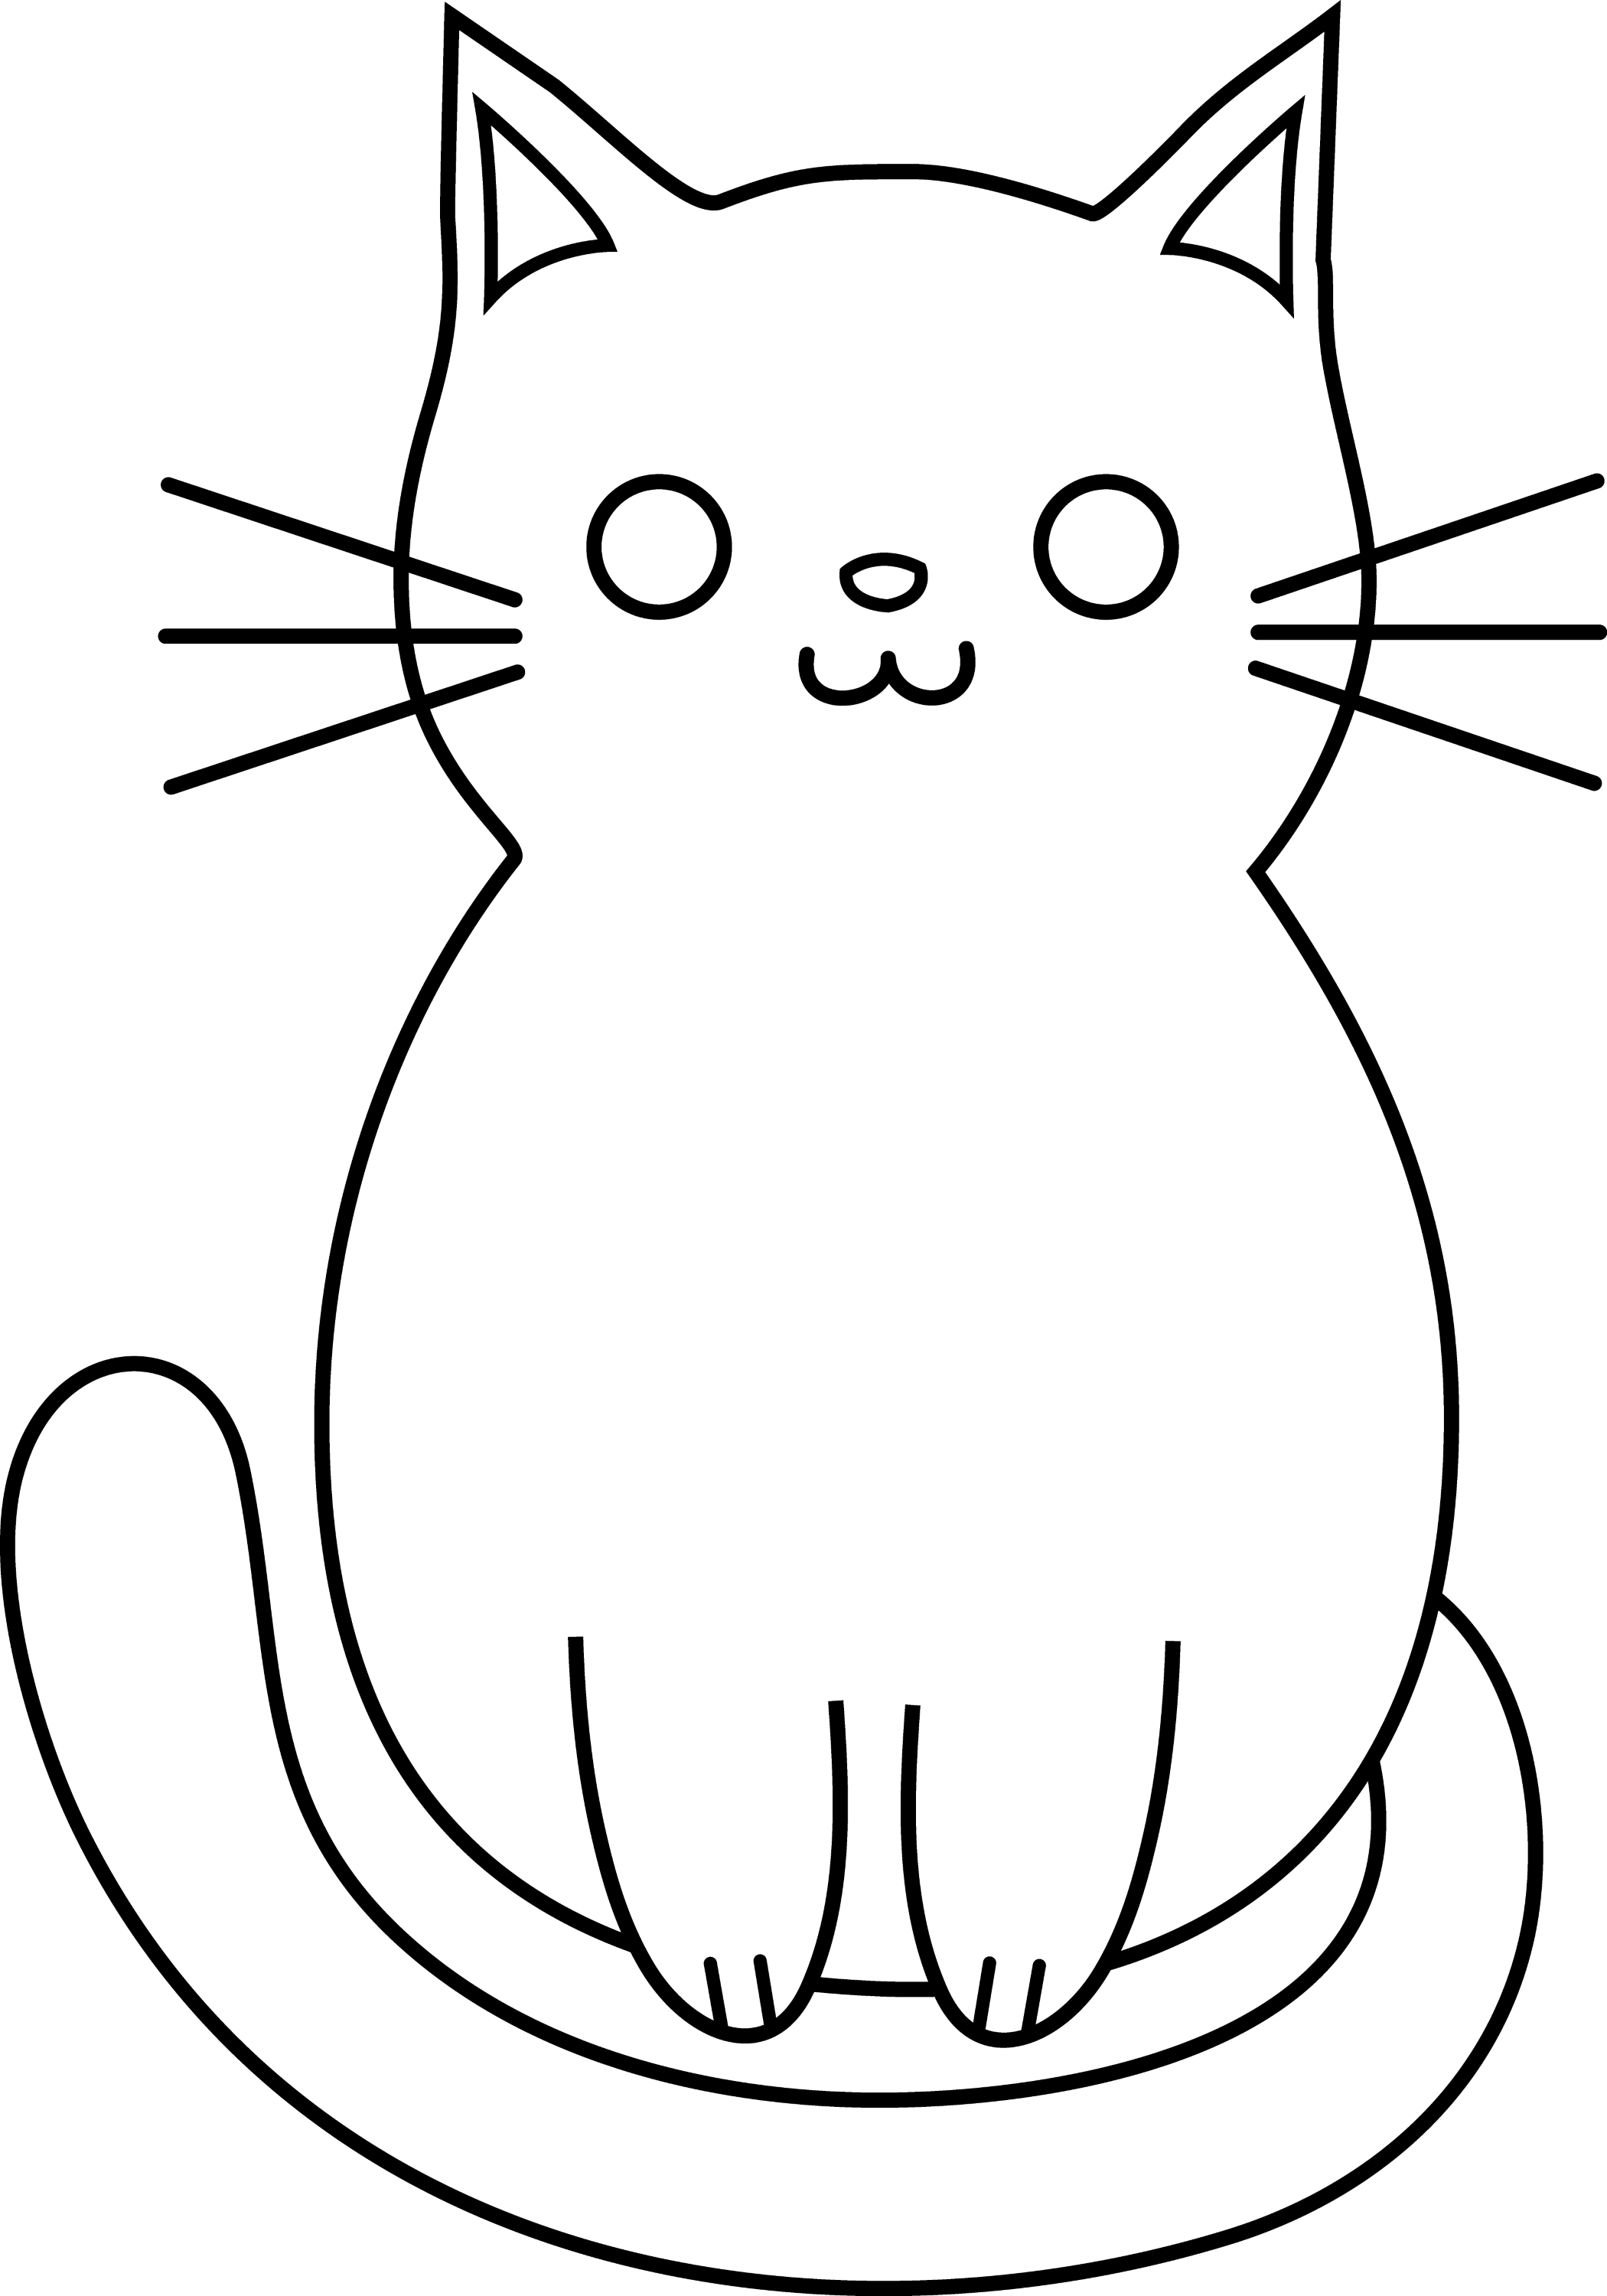 Line Drawing Clip Art : Cute cat line art free clip